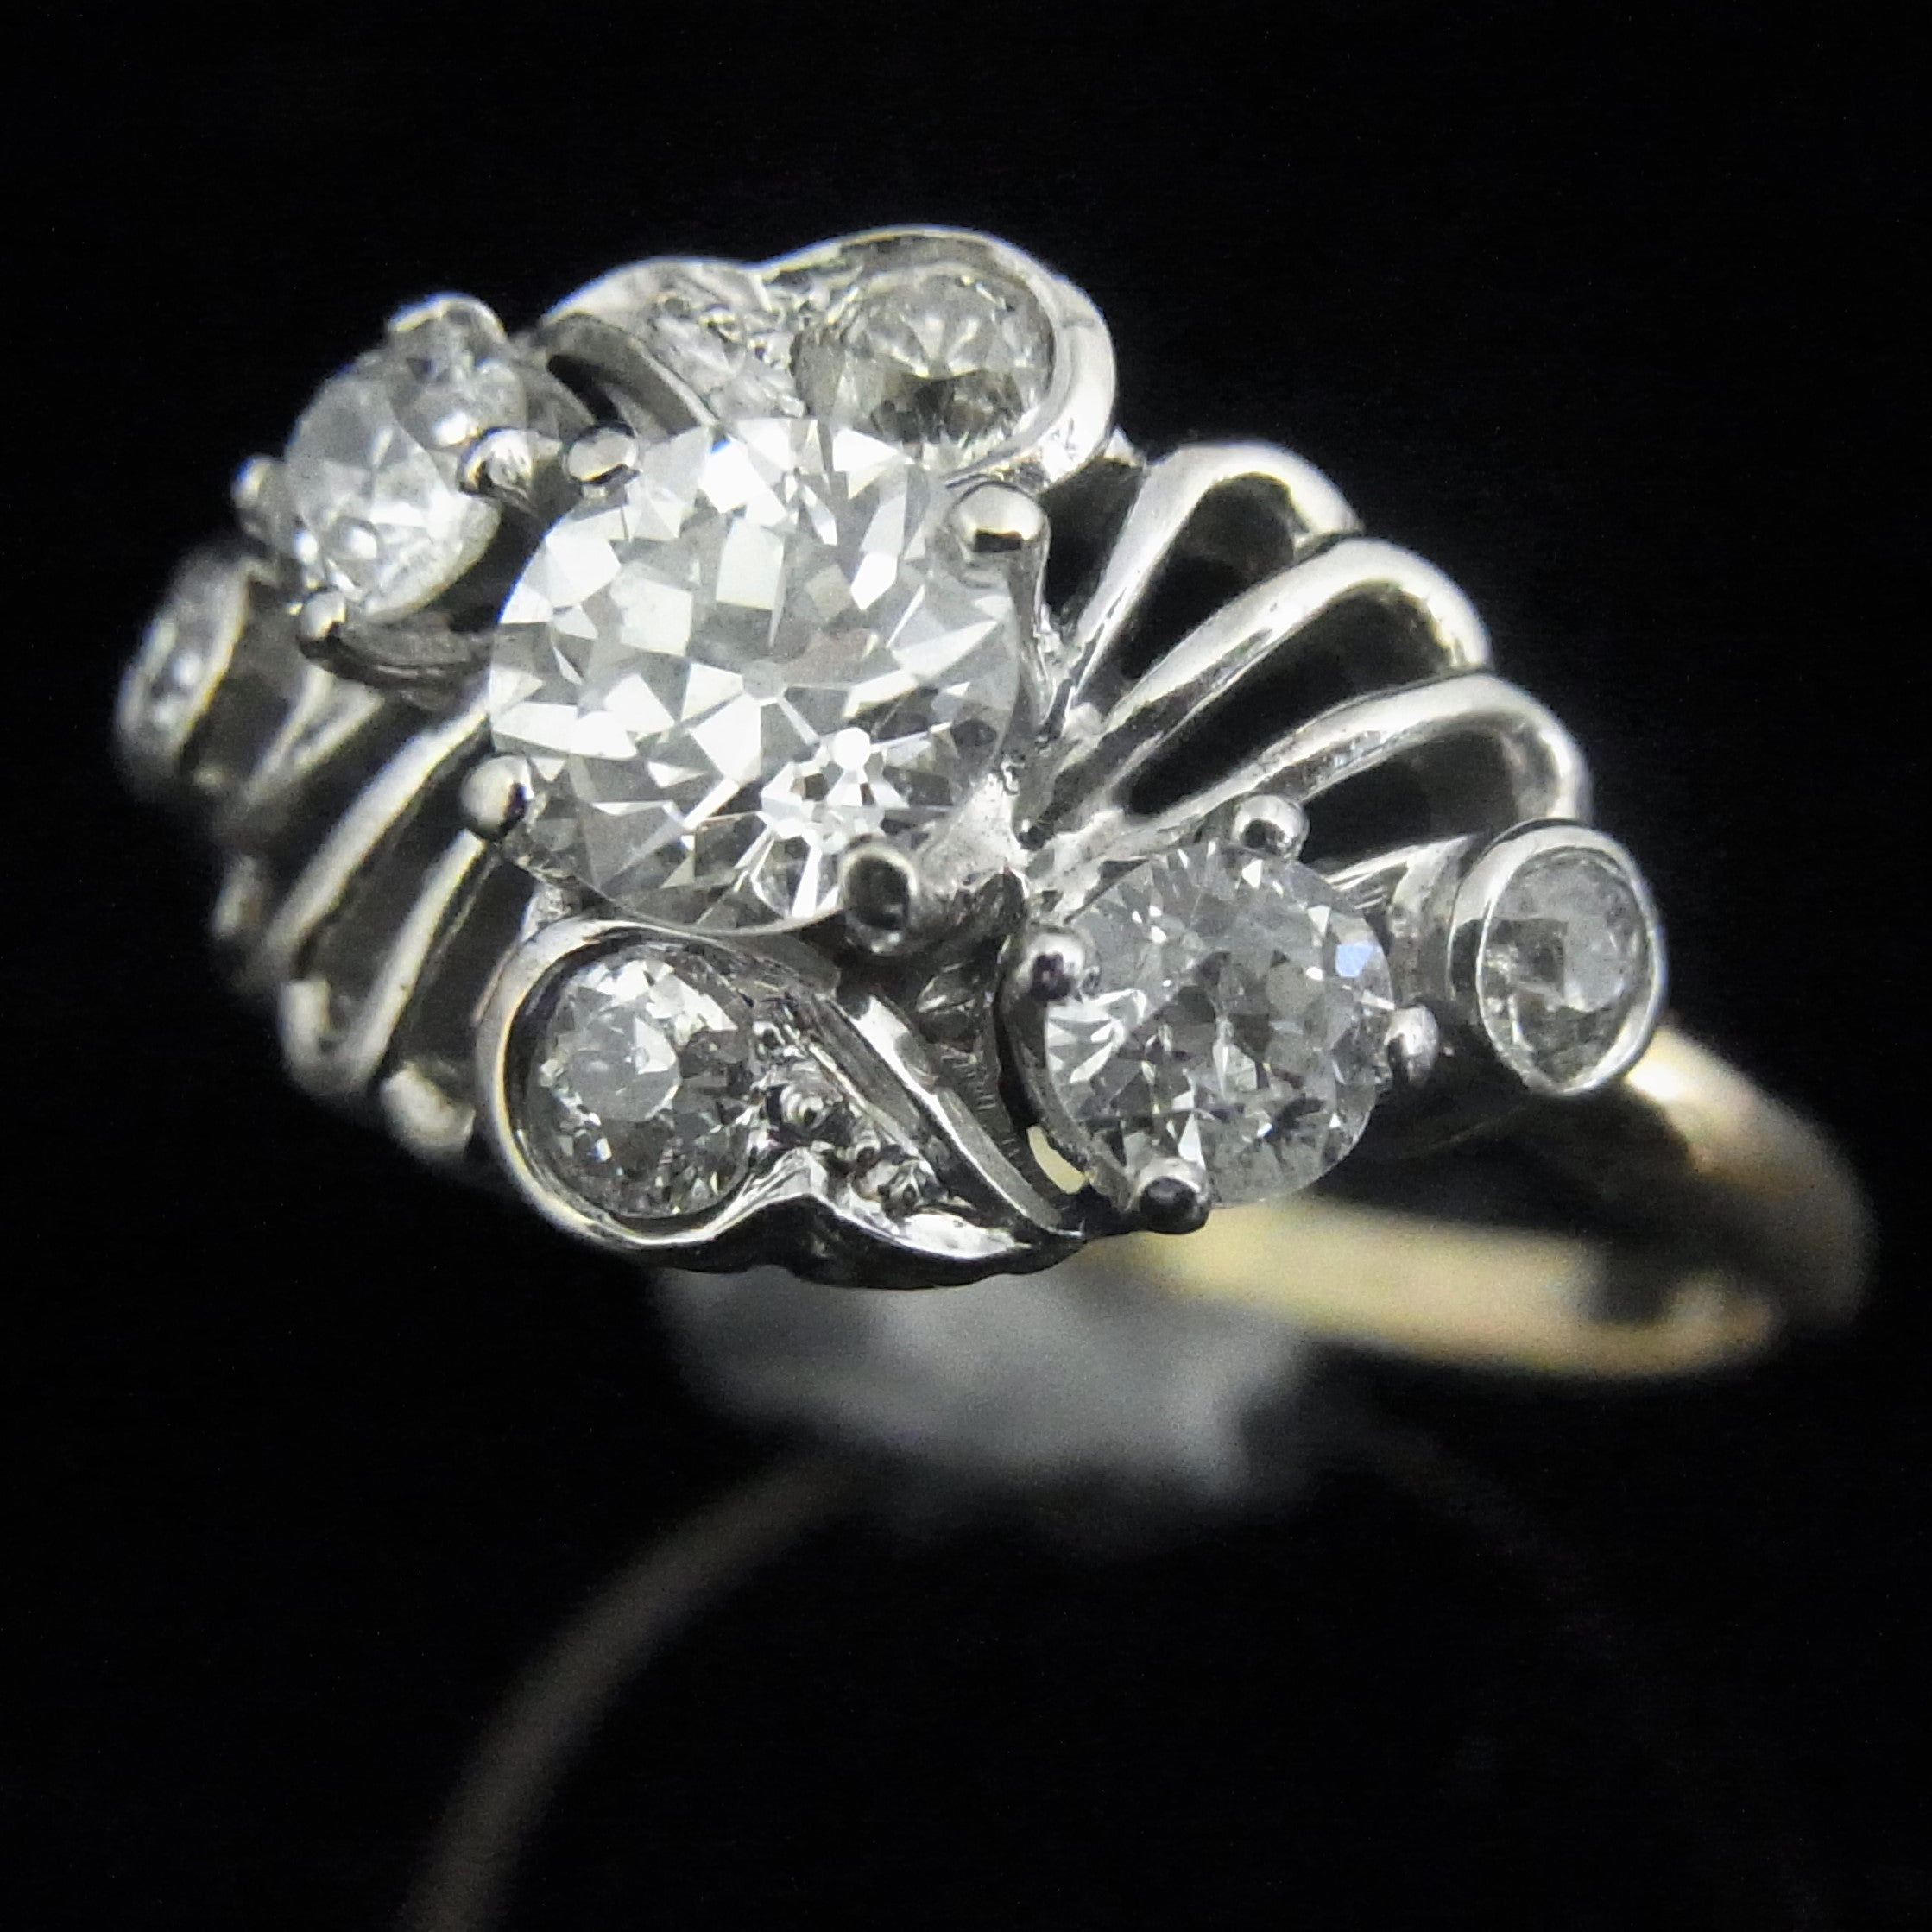 pin diamond old engagement european ring rings art vintage white gold jewellery cut deco